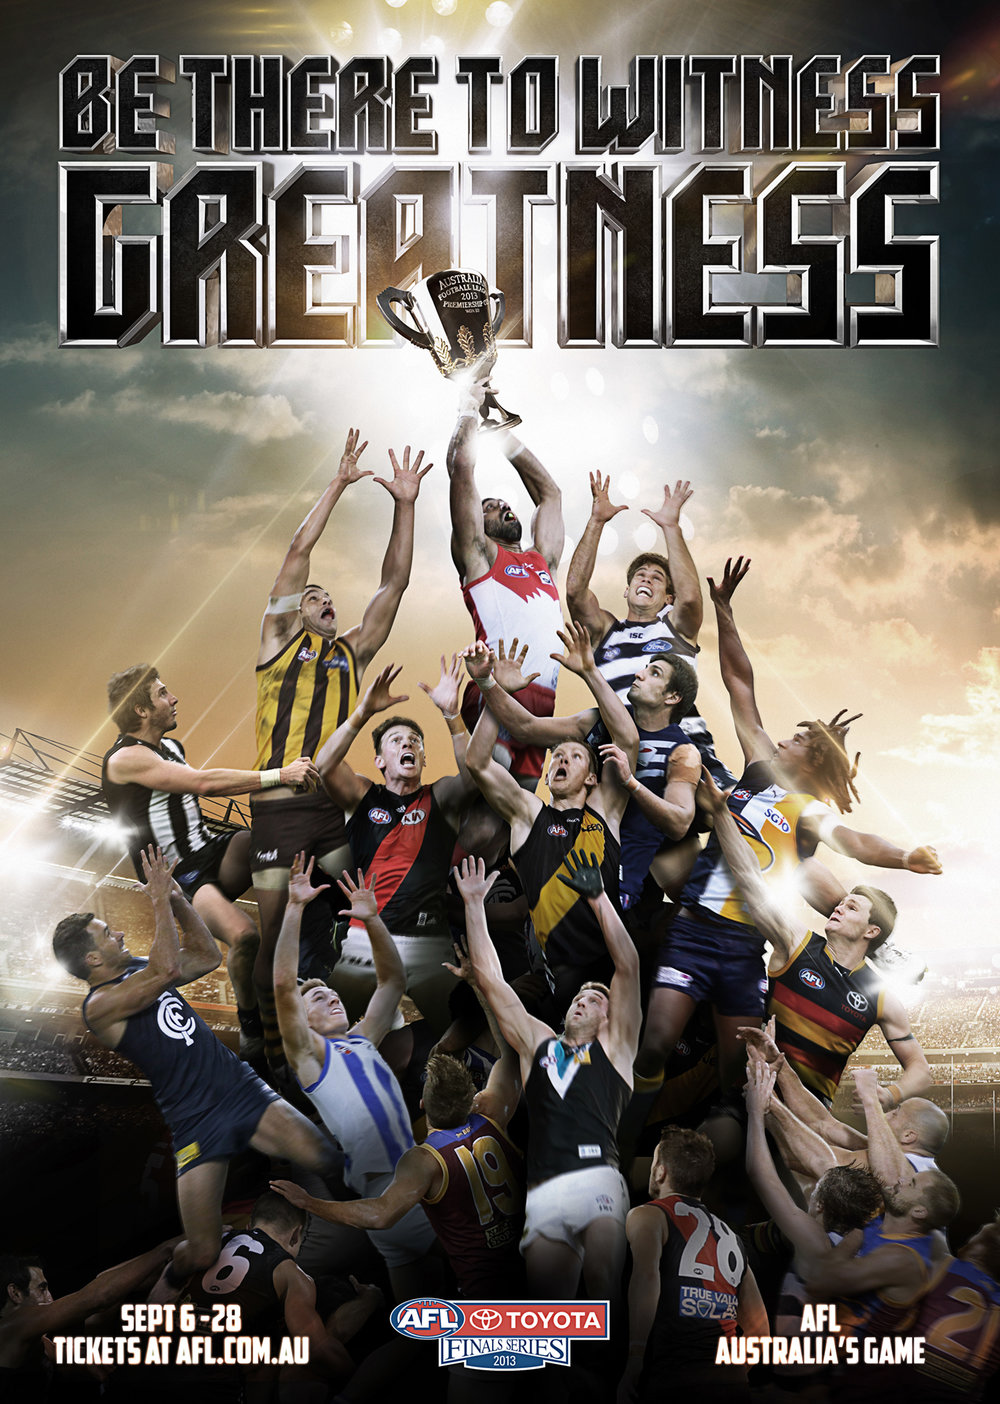 - For several years, I was the lead creative and writer across all of the AFL's advertising. I loved doing it. As a part of this role, I was able to work with legendary You Am I frontman (and North Melbourne tragic) Tim Rogers on a couple of AFL Finals campaigns.The campaigns resonated strongly with the players and the public, and seeing Bulldogs legend Bob Murphy wax lyrical on the campaign for five minutes on AFL 360 was a real highlight. Then to see the campaign parodied during the Brownlow Medal telecast was even more surreal.